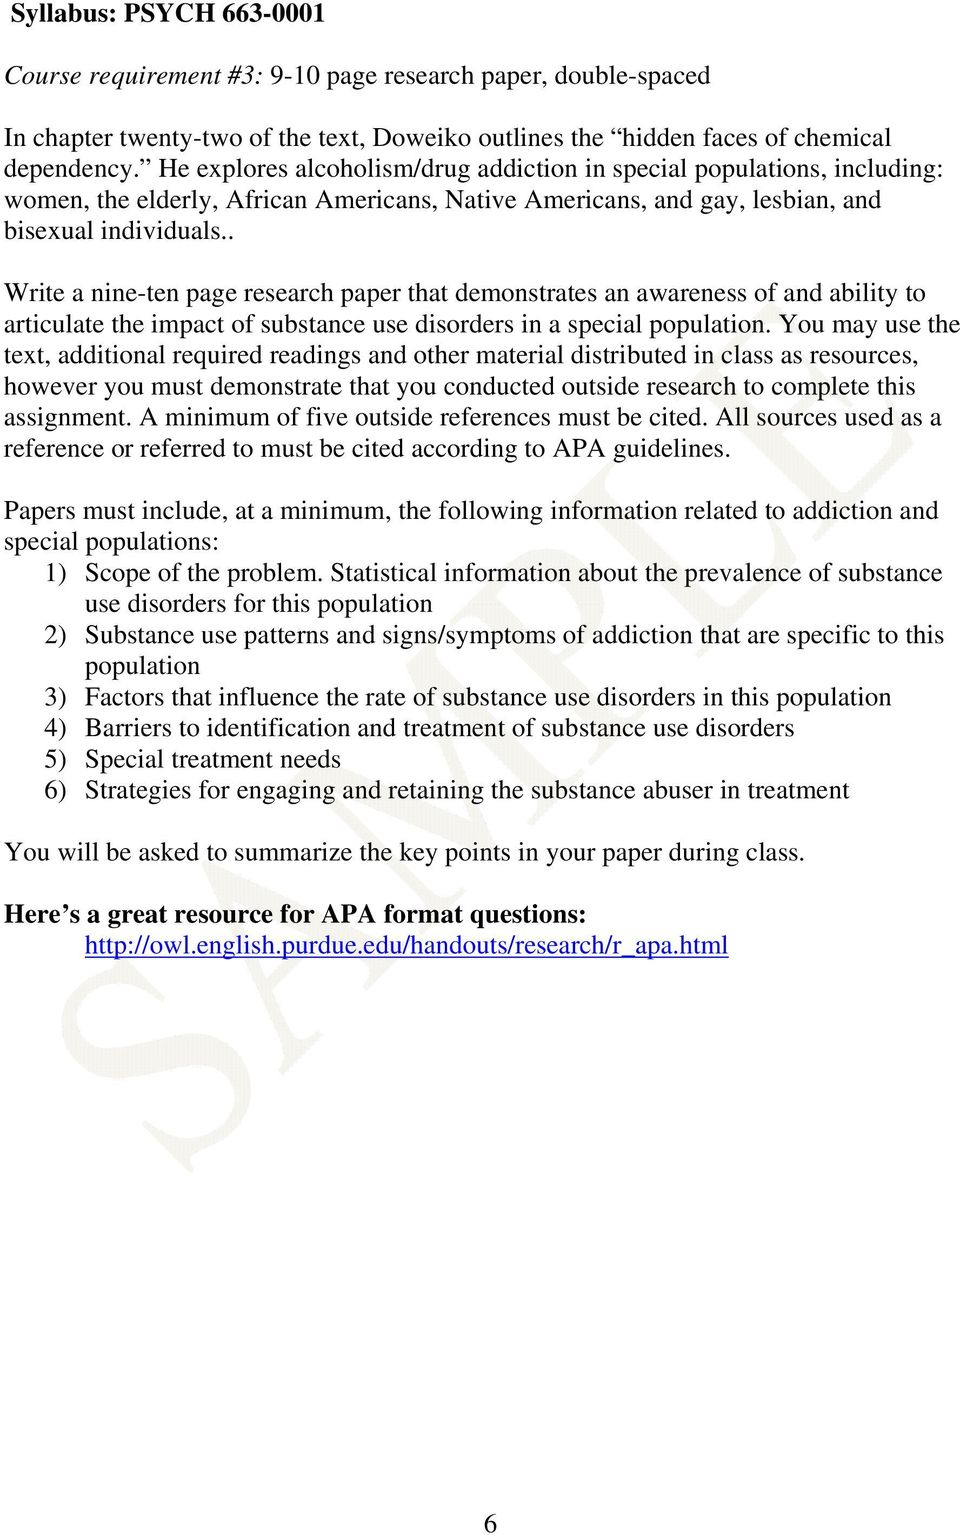 . Write a nine-ten page research paper that demonstrates an awareness of and ability to articulate the impact of substance use disorders in a special population.